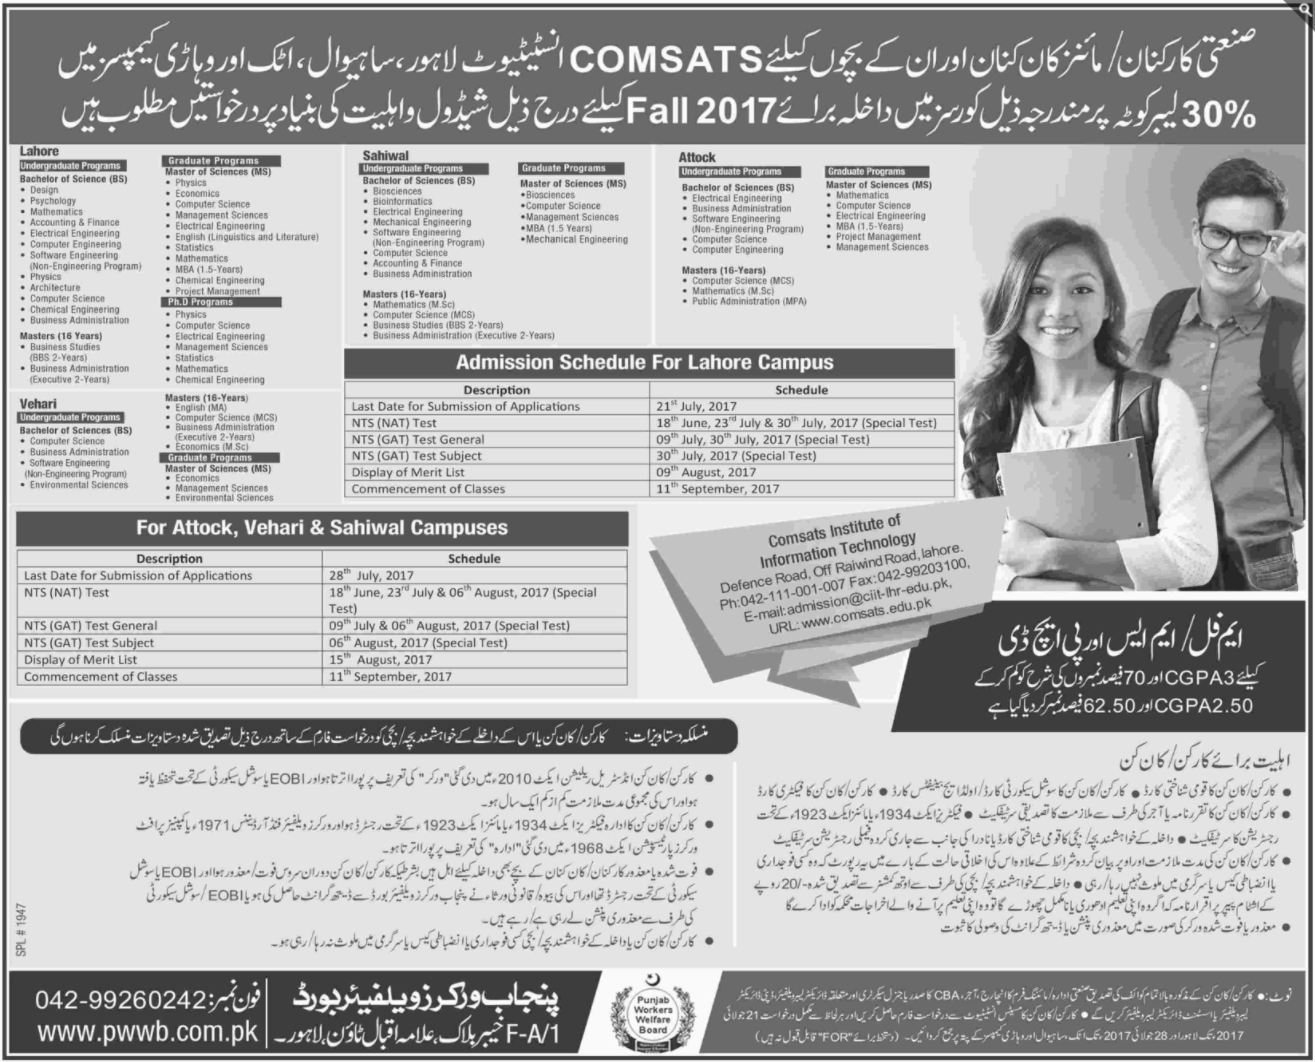 COMSATS Institute of Science & Technology Admissions Open – 2017